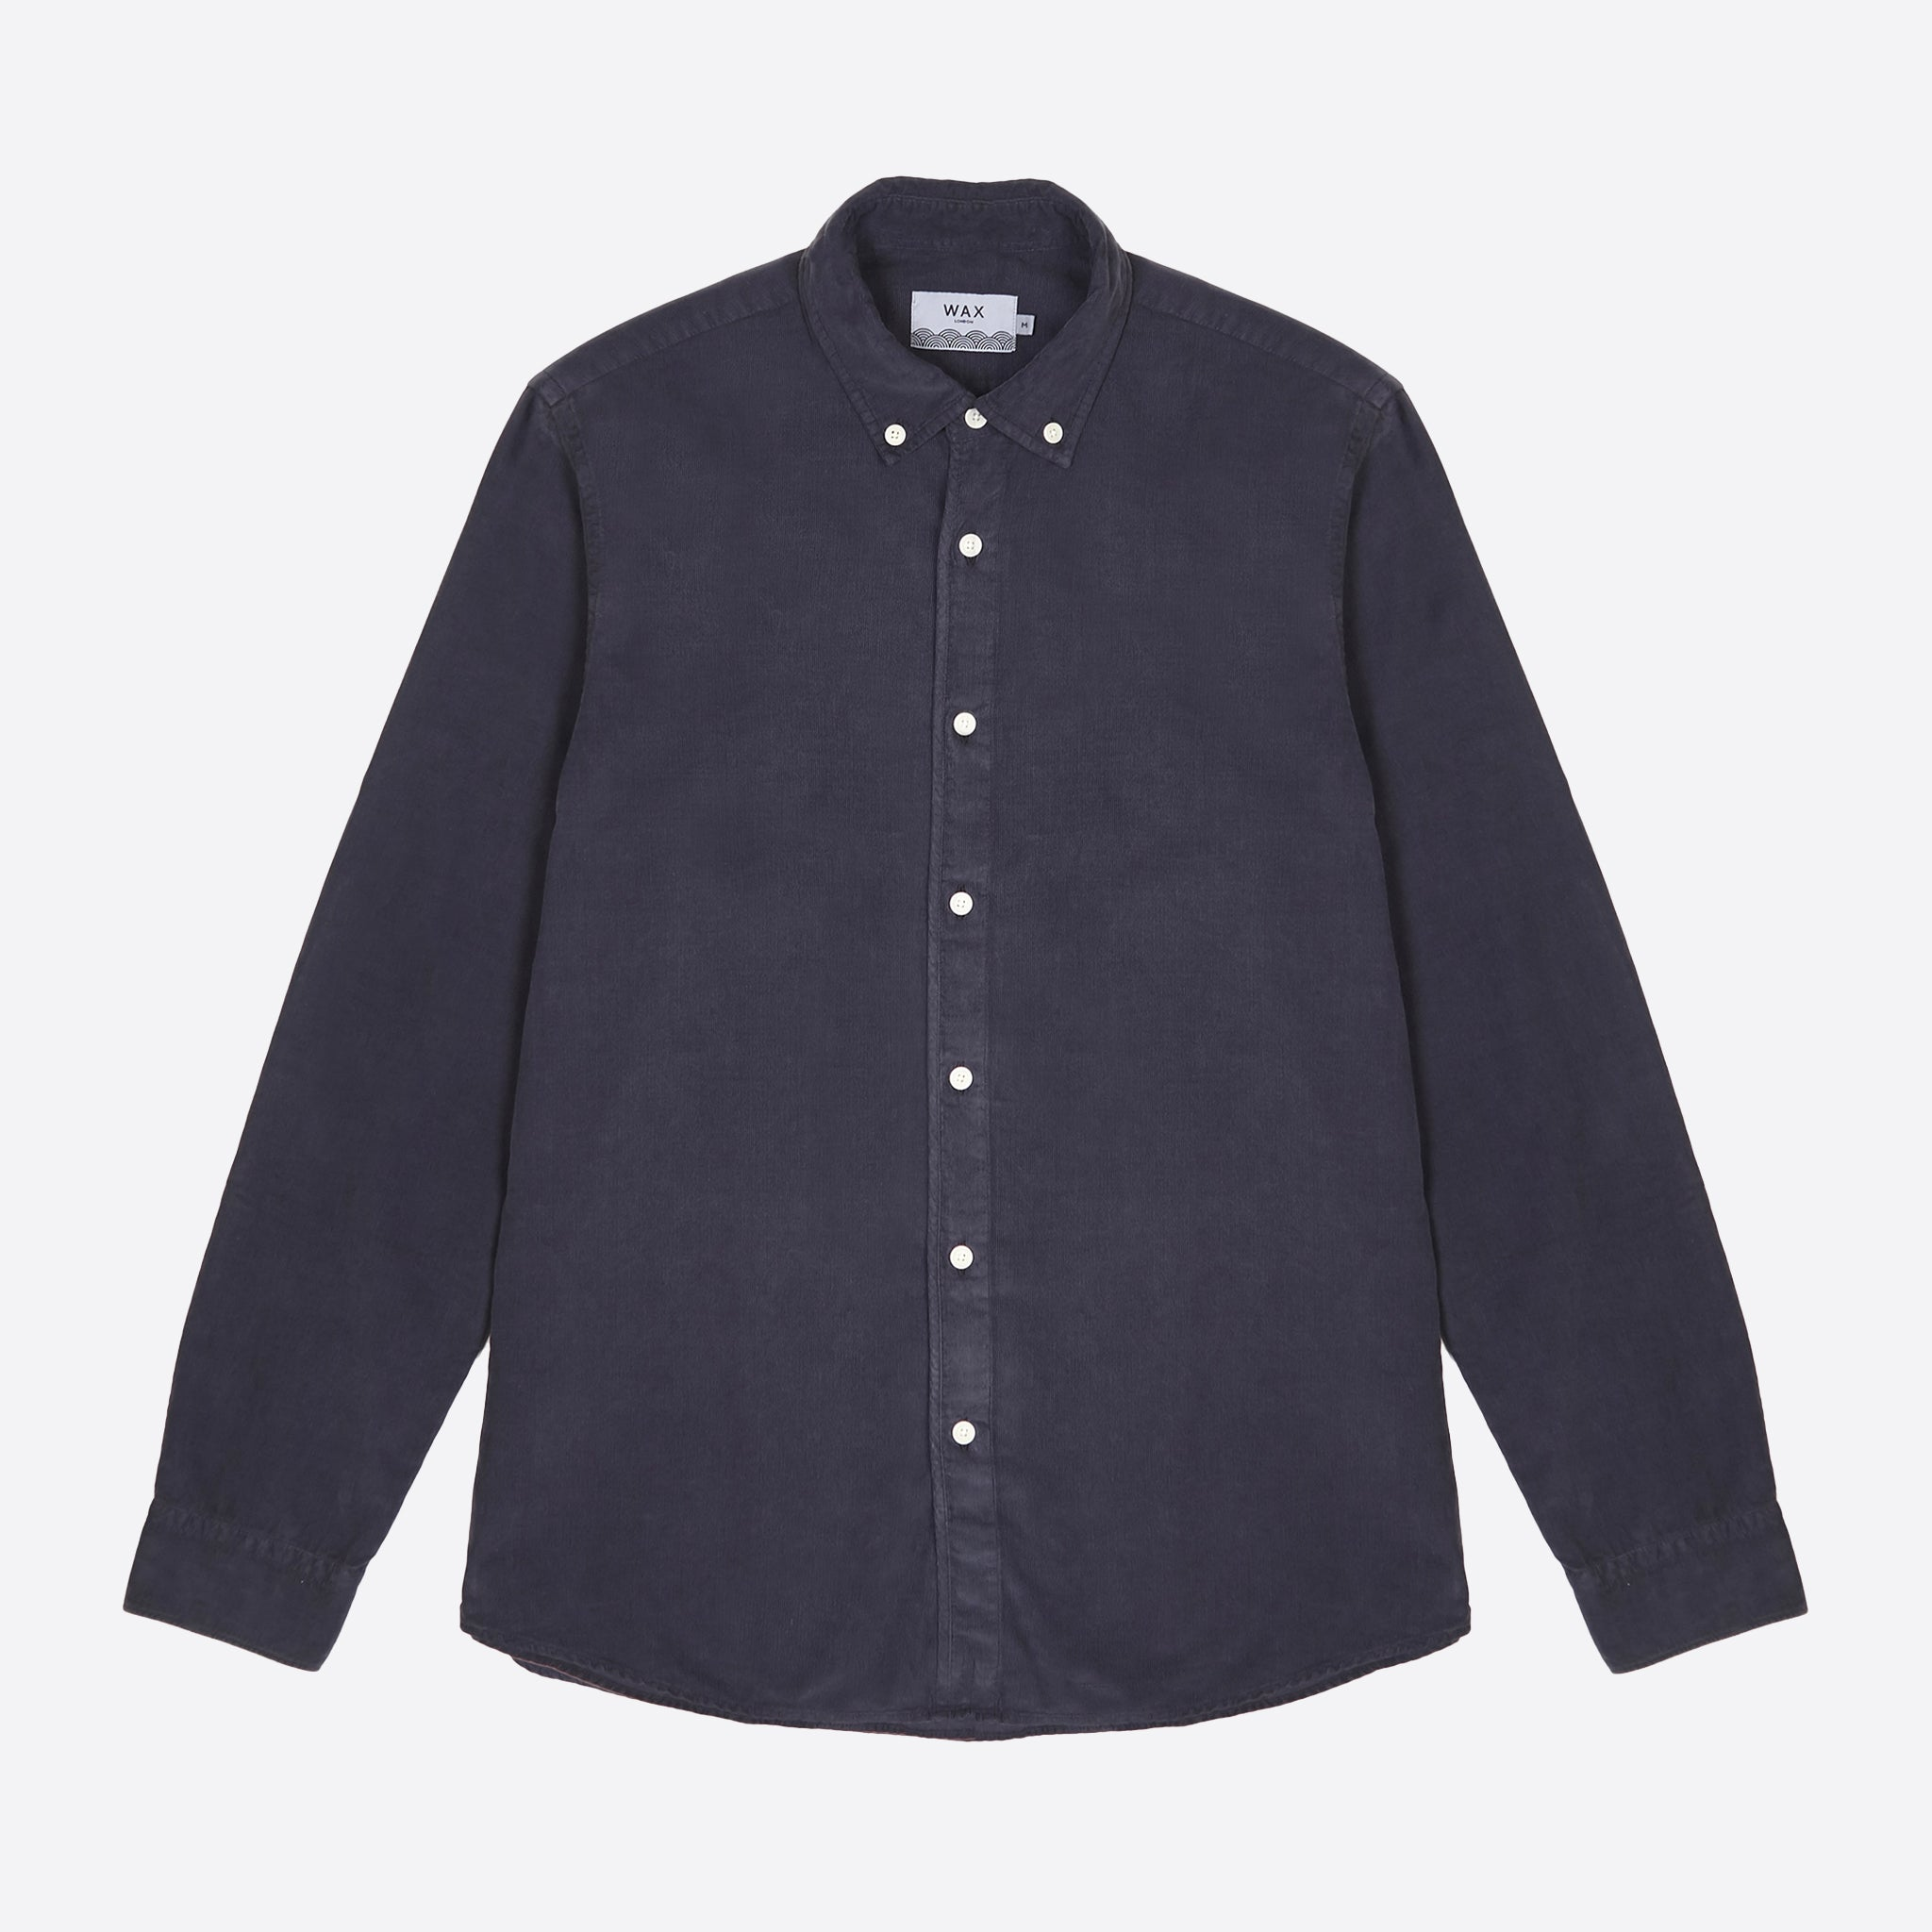 Wax London Bampton Shirt in Deep Ocean